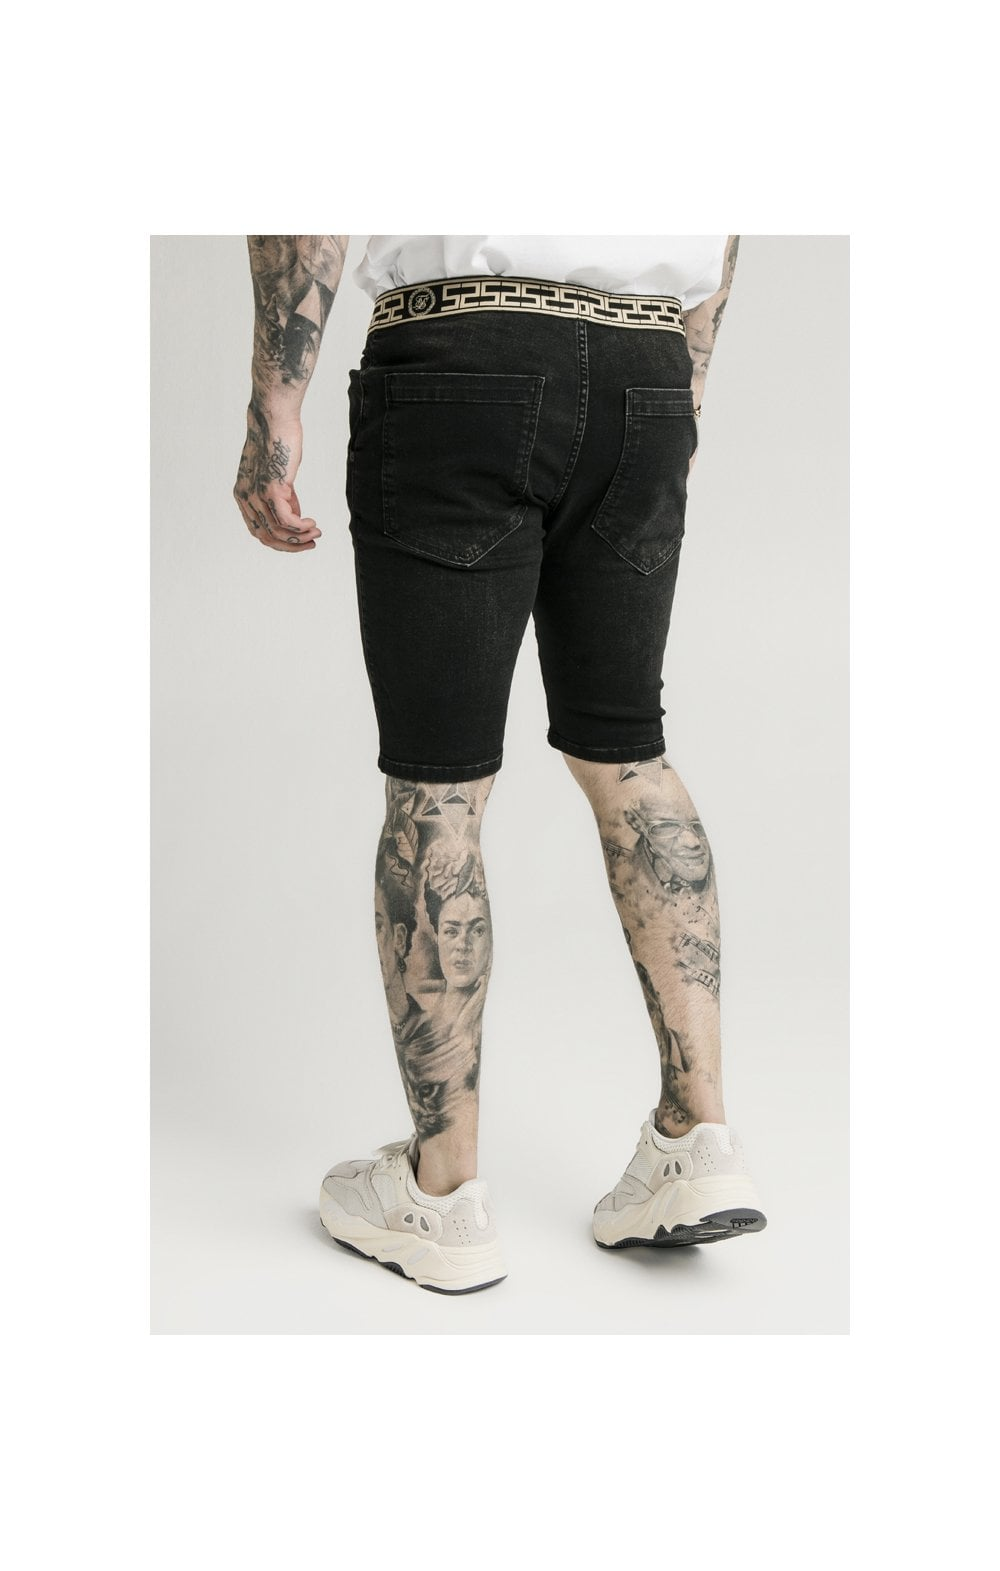 Load image into Gallery viewer, SikSilk Elasticated Waist Distressed Denim Shorts – Black (2)